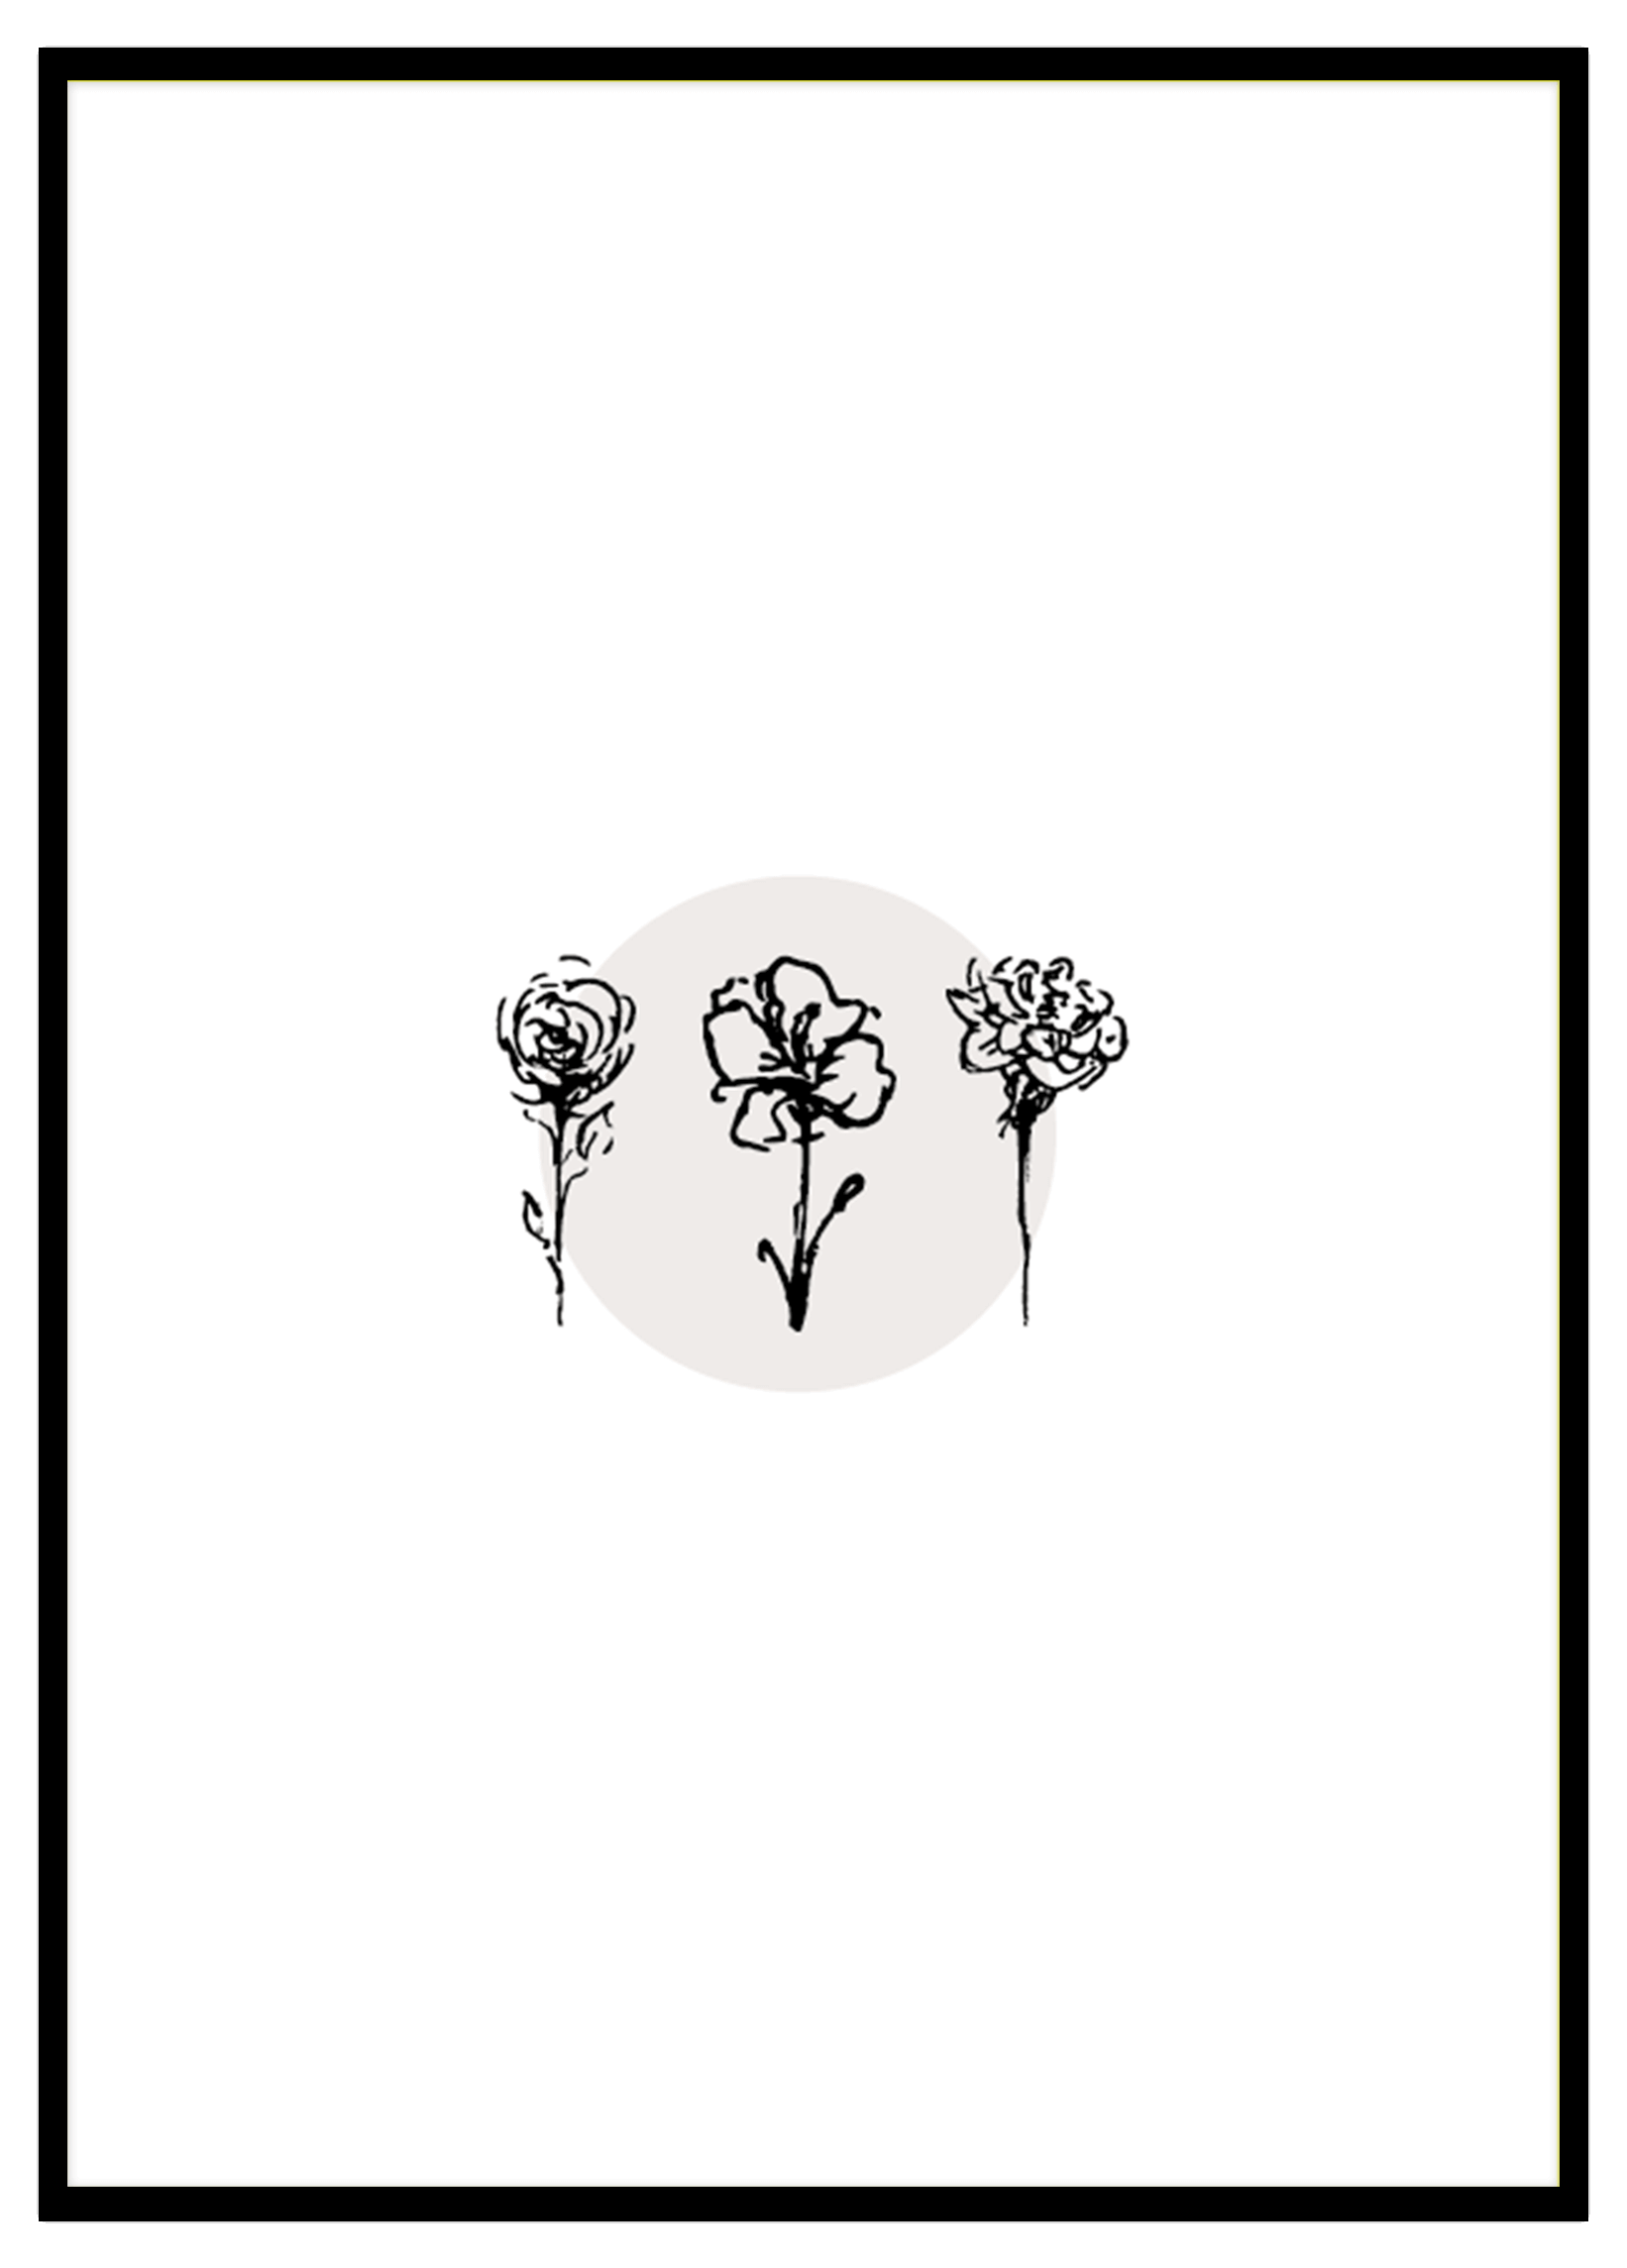 3 Flowers With Circle